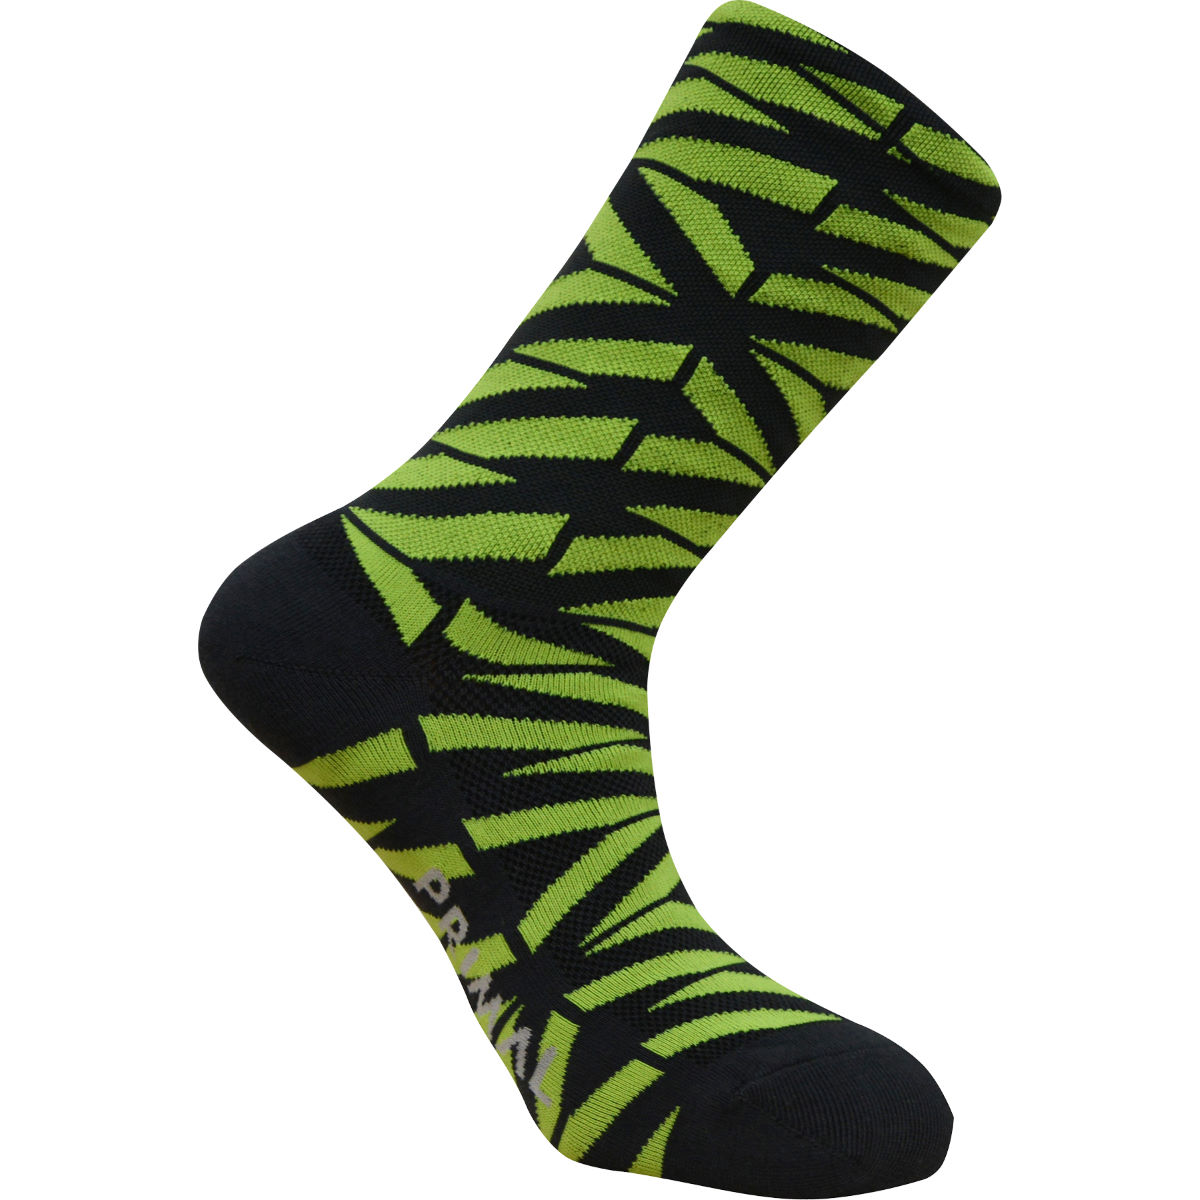 Calcetines Primal Neon Crush - Calcetines